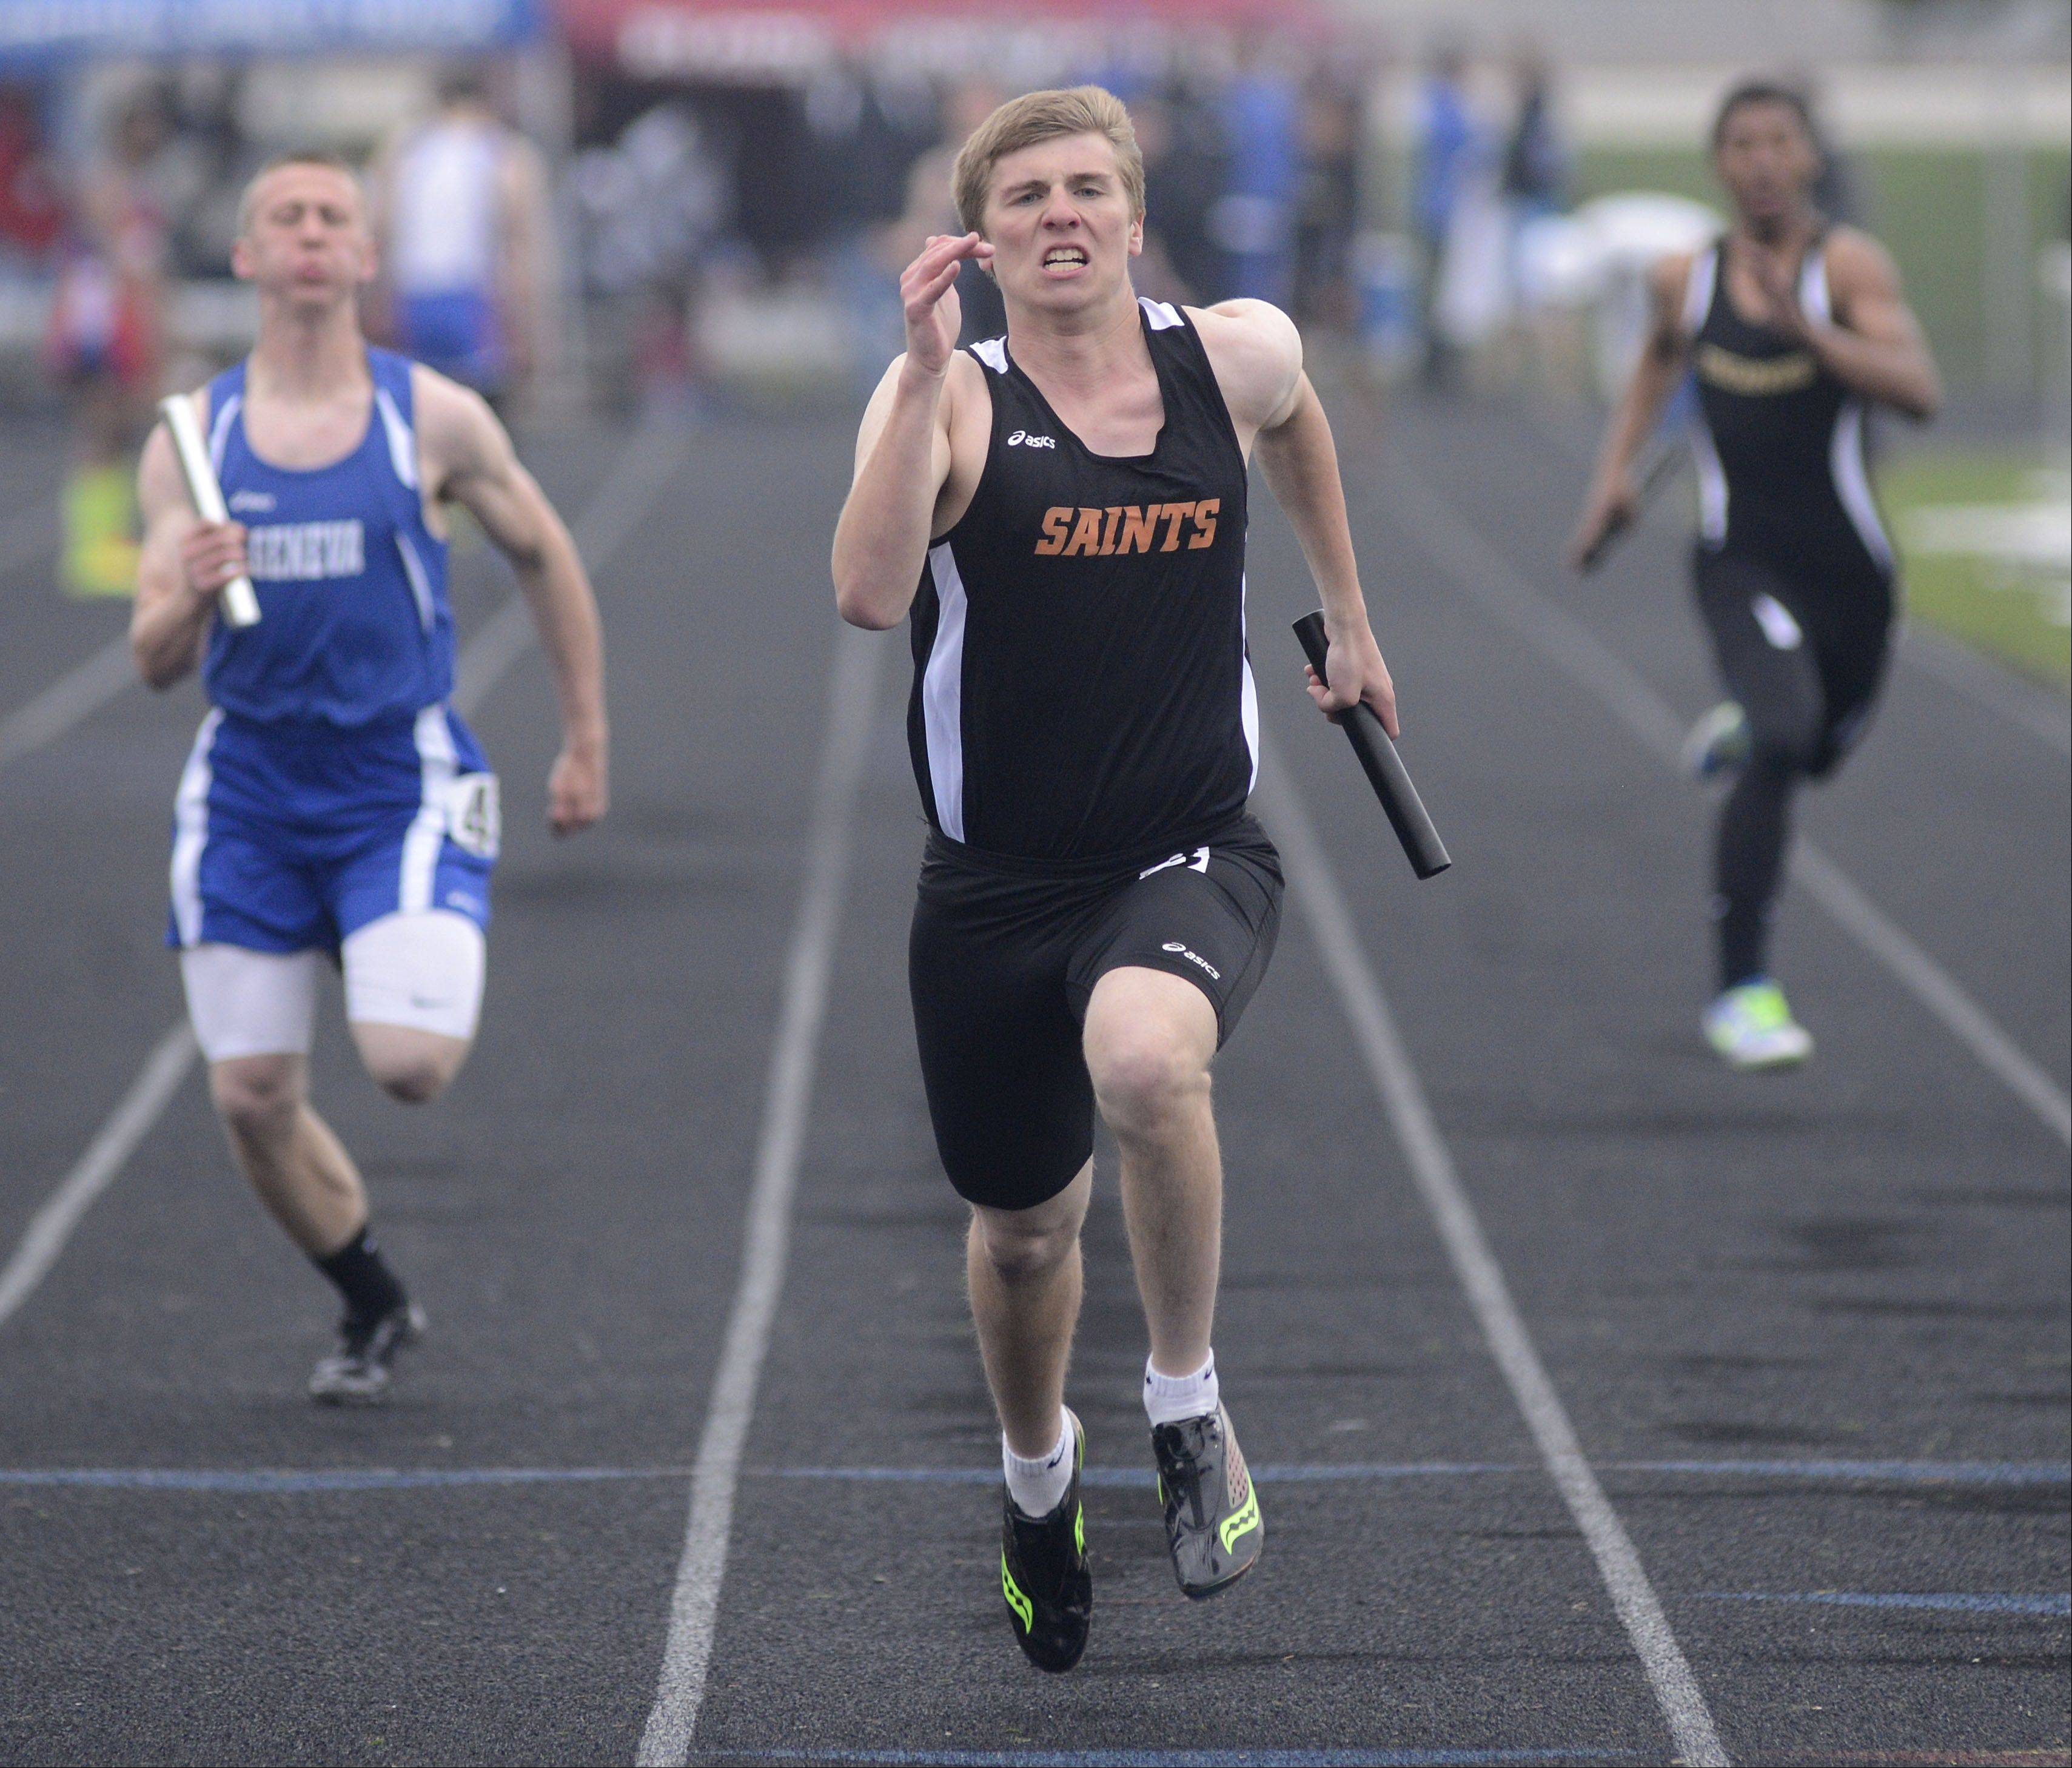 St. Charles East's Evan Connelly helps the Saints take first place in the first heat of the 4 x 100 meter relay at the Kane County boys track meet at Burlington Central on Friday.